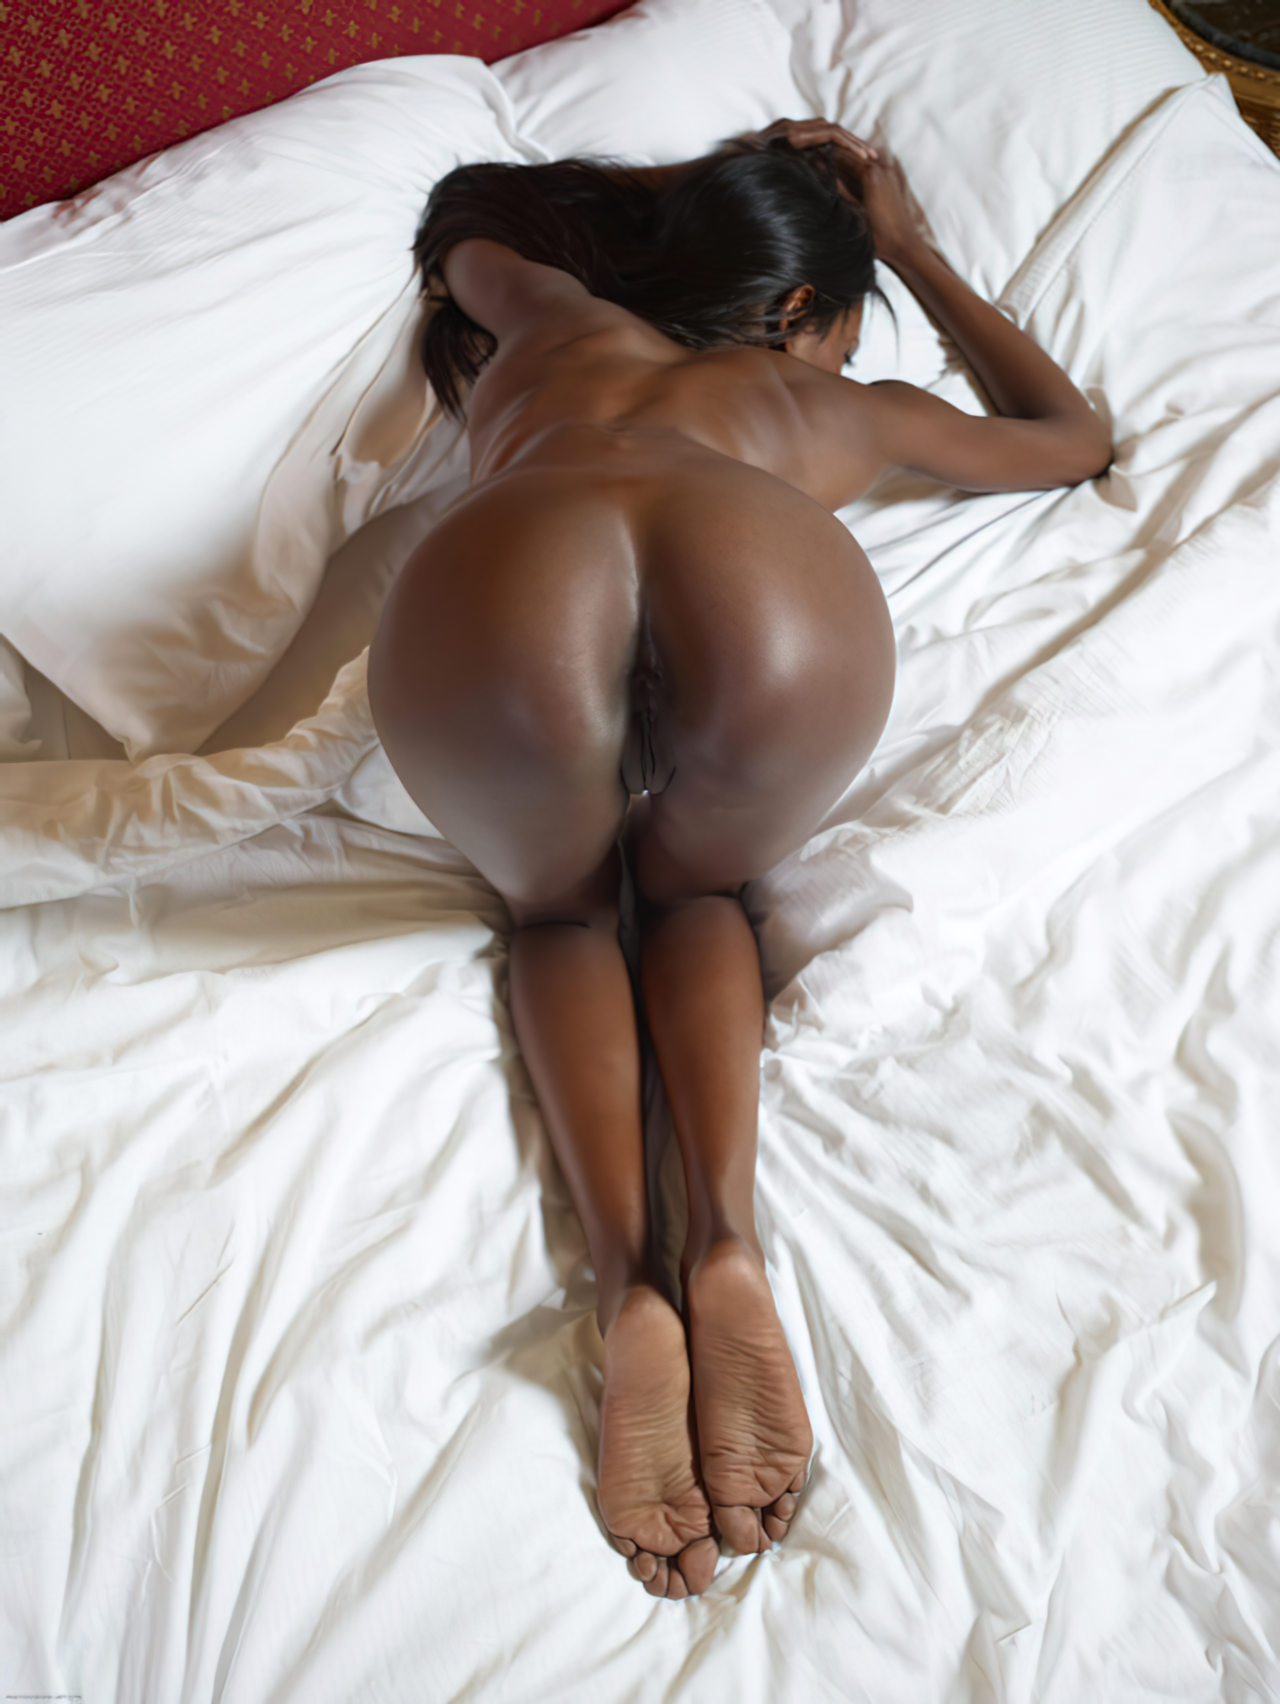 Nude black girls tumblr pity, that